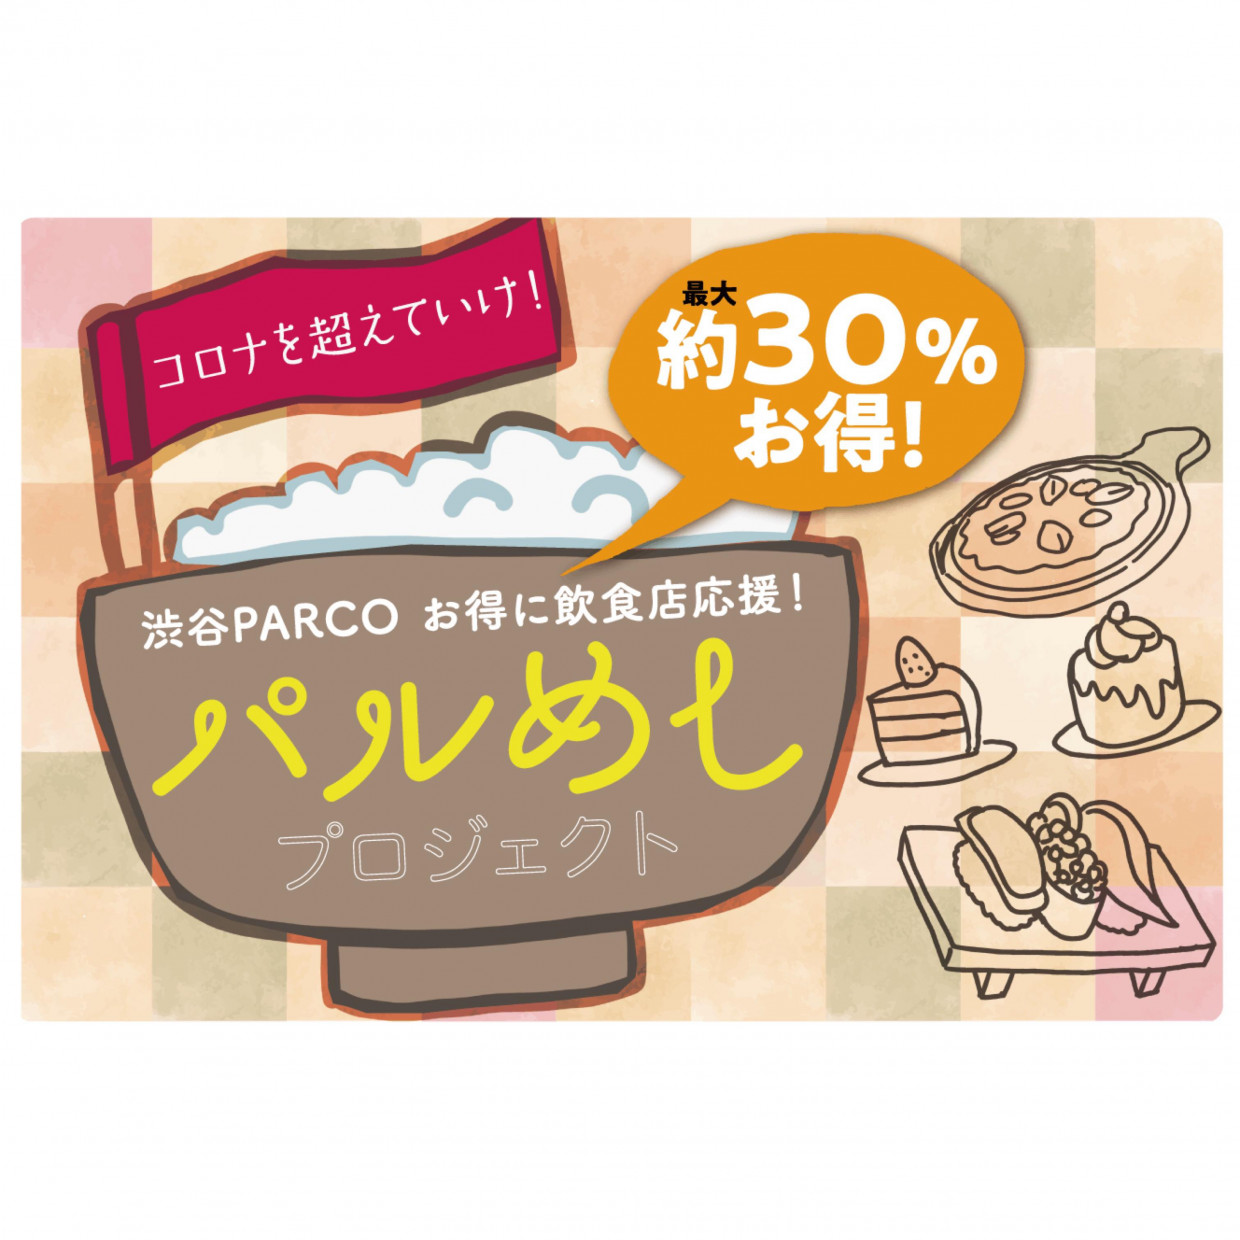 It is advantageous, and crowd funding to support starts from restaurant of Shibuya PARCO!